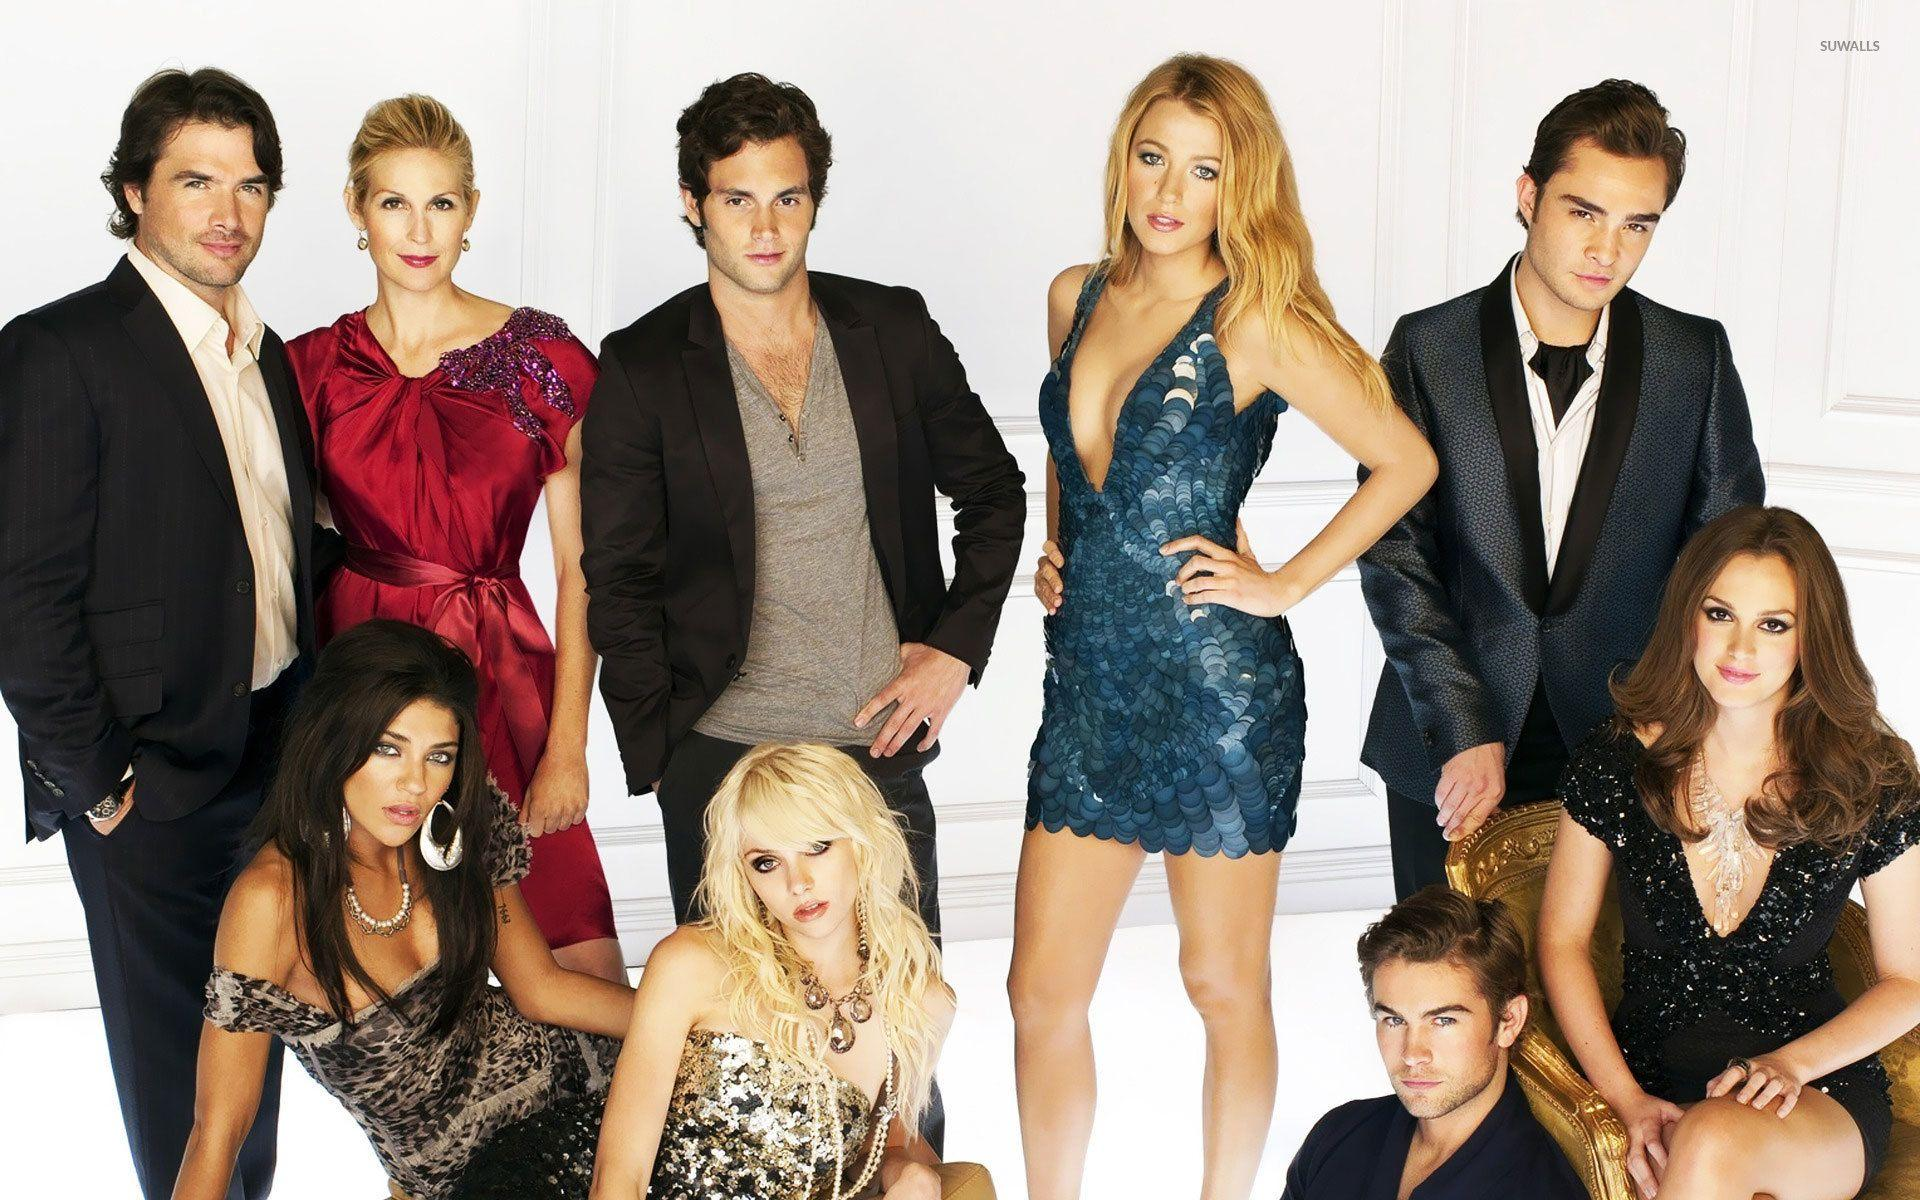 Gossip Girl wallpaper - TV Show wallpapers - #3072